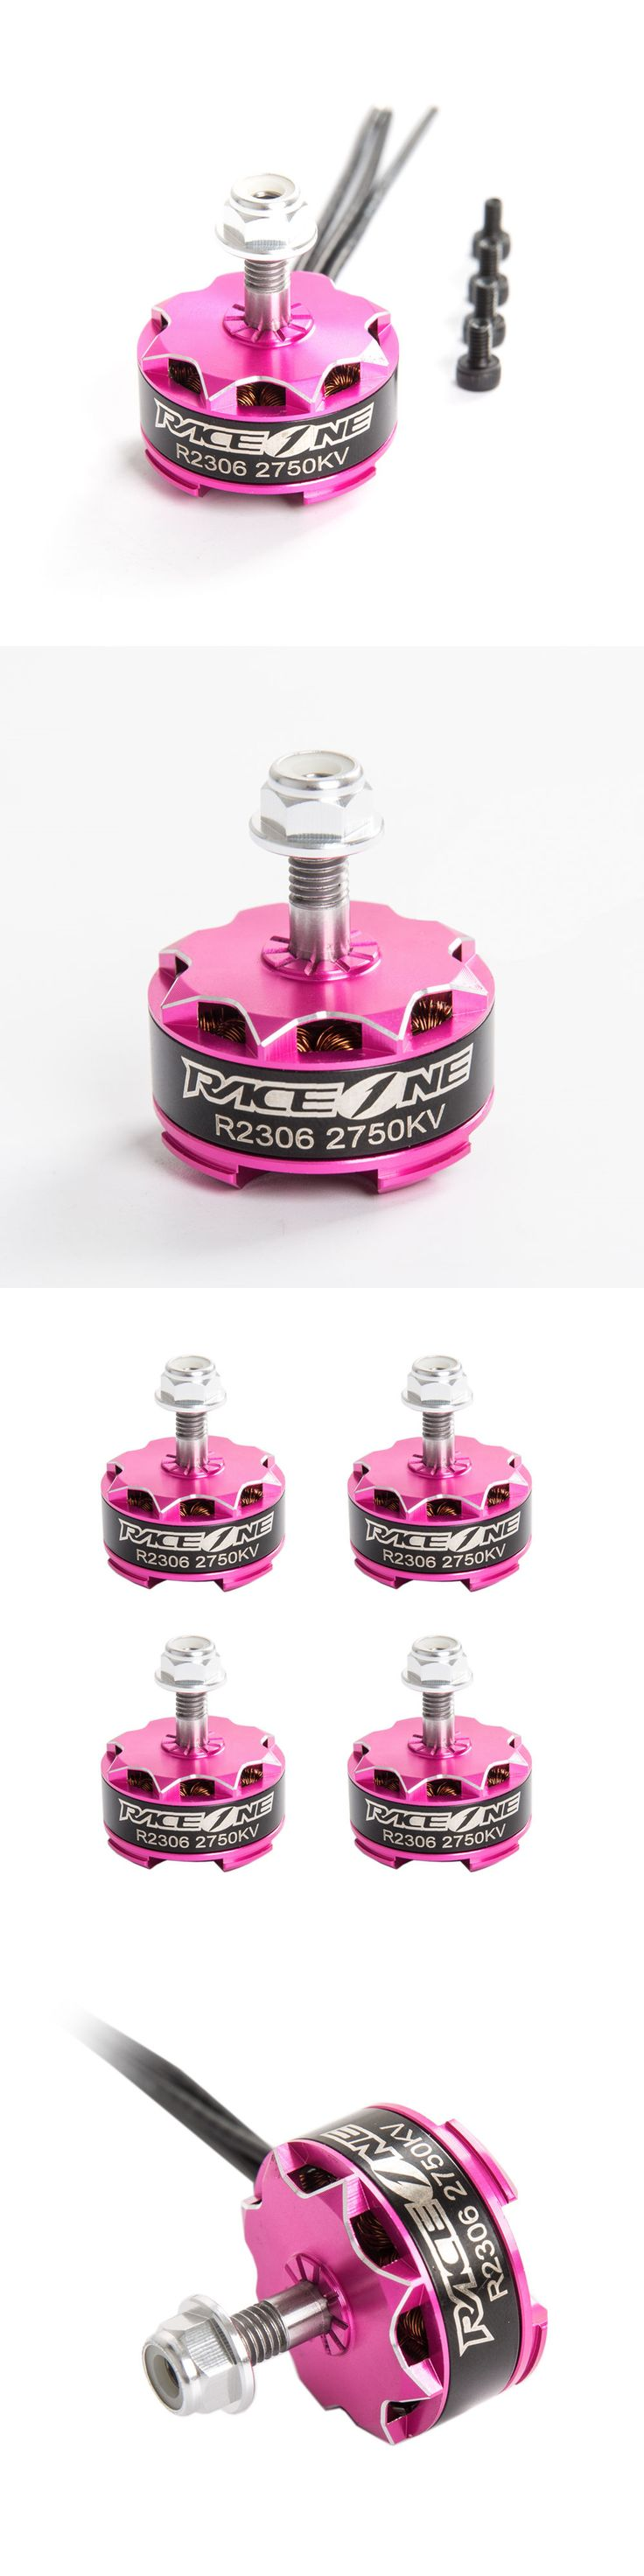 Radio Control 51029: Nidici Raceone R2306 2750Kv Racespec Brushless Motor For Fpv Racing Quadcopter -> BUY IT NOW ONLY: $75.99 on eBay!